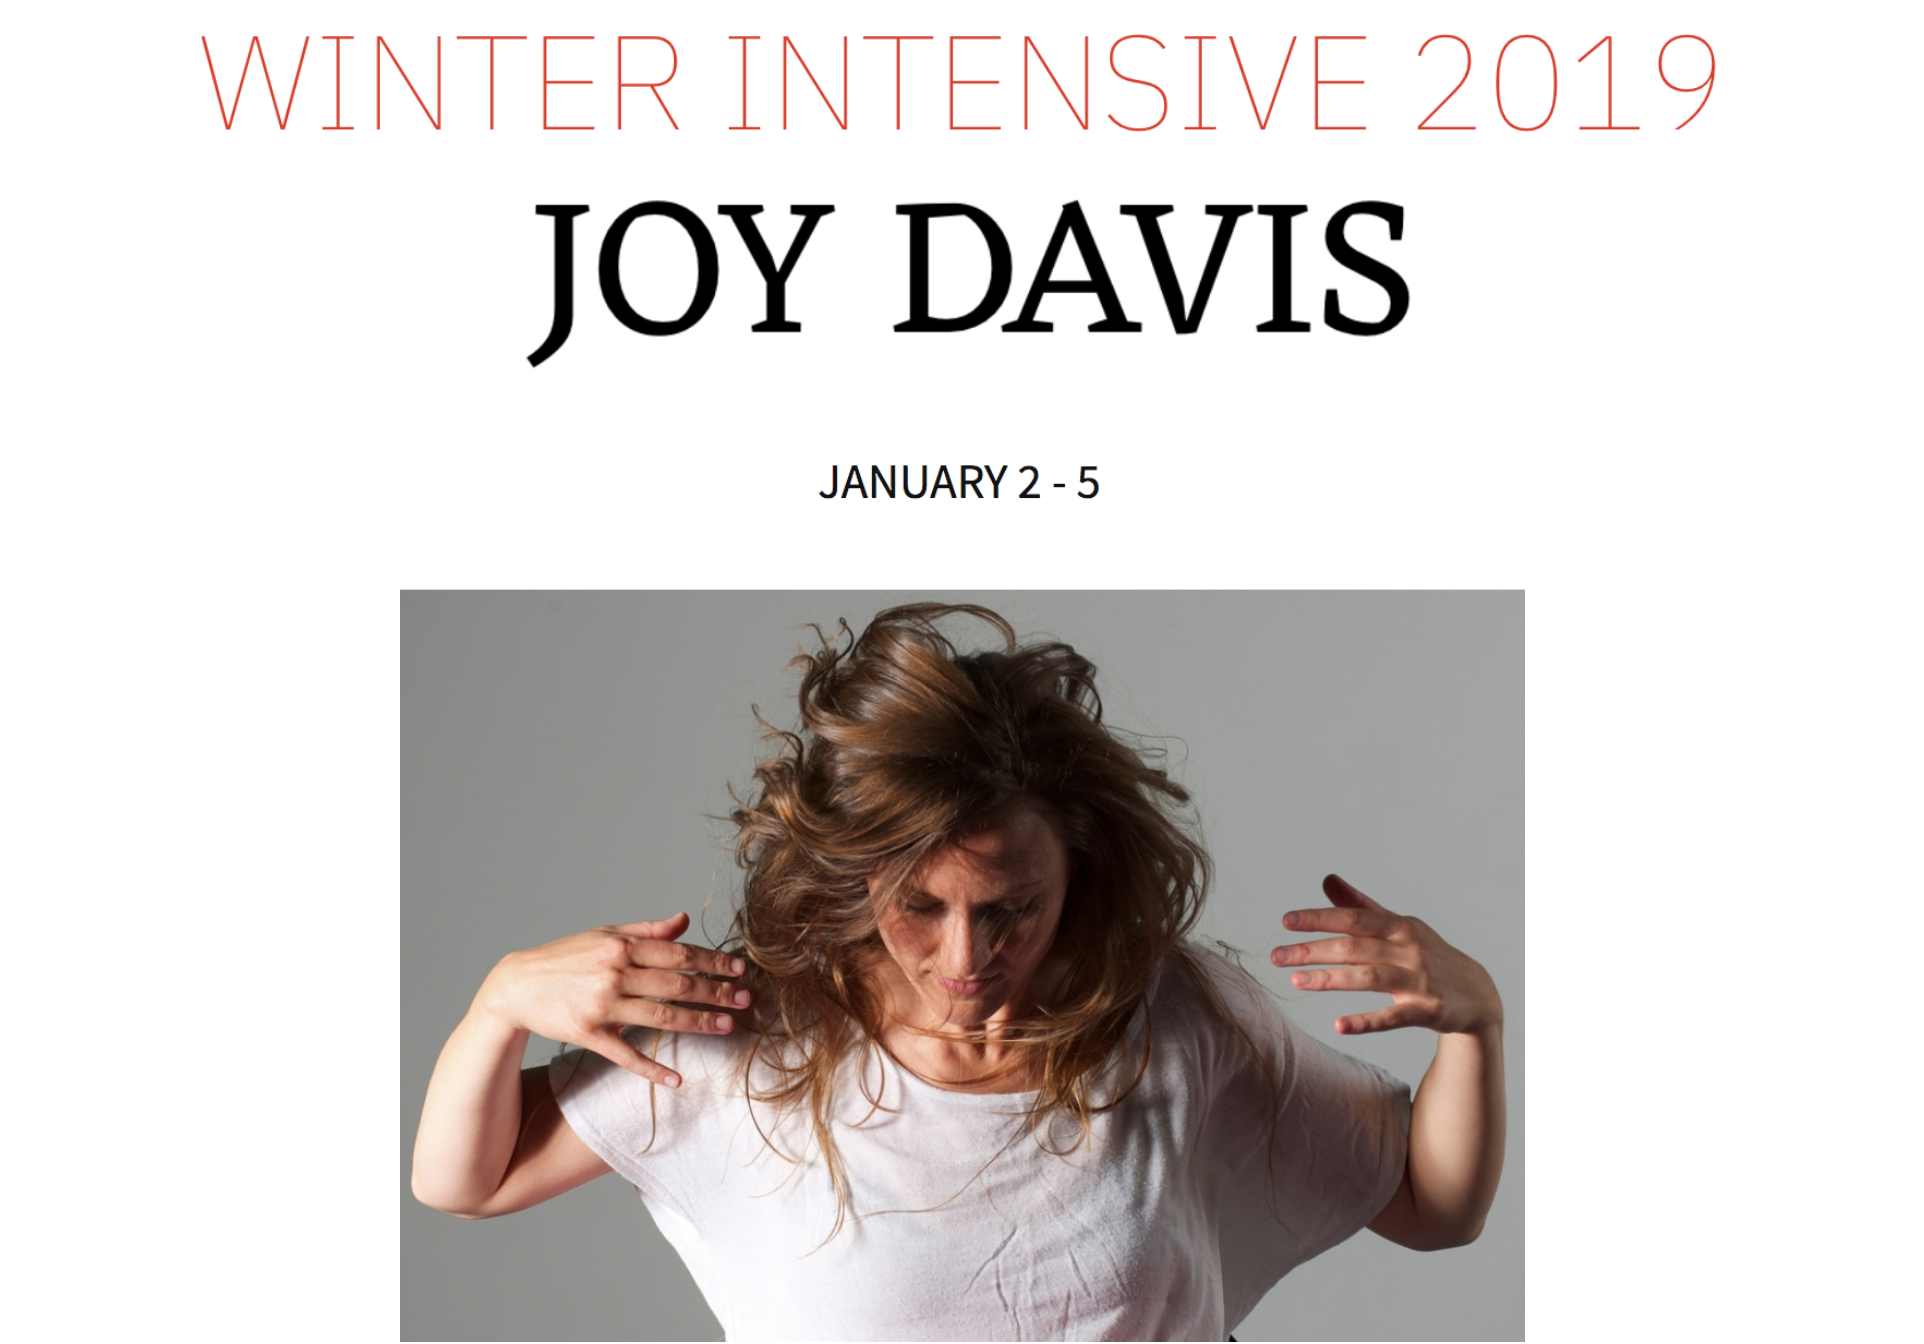 Copy of WINTER INTENSIVE  |  January 2 - 5, 2019